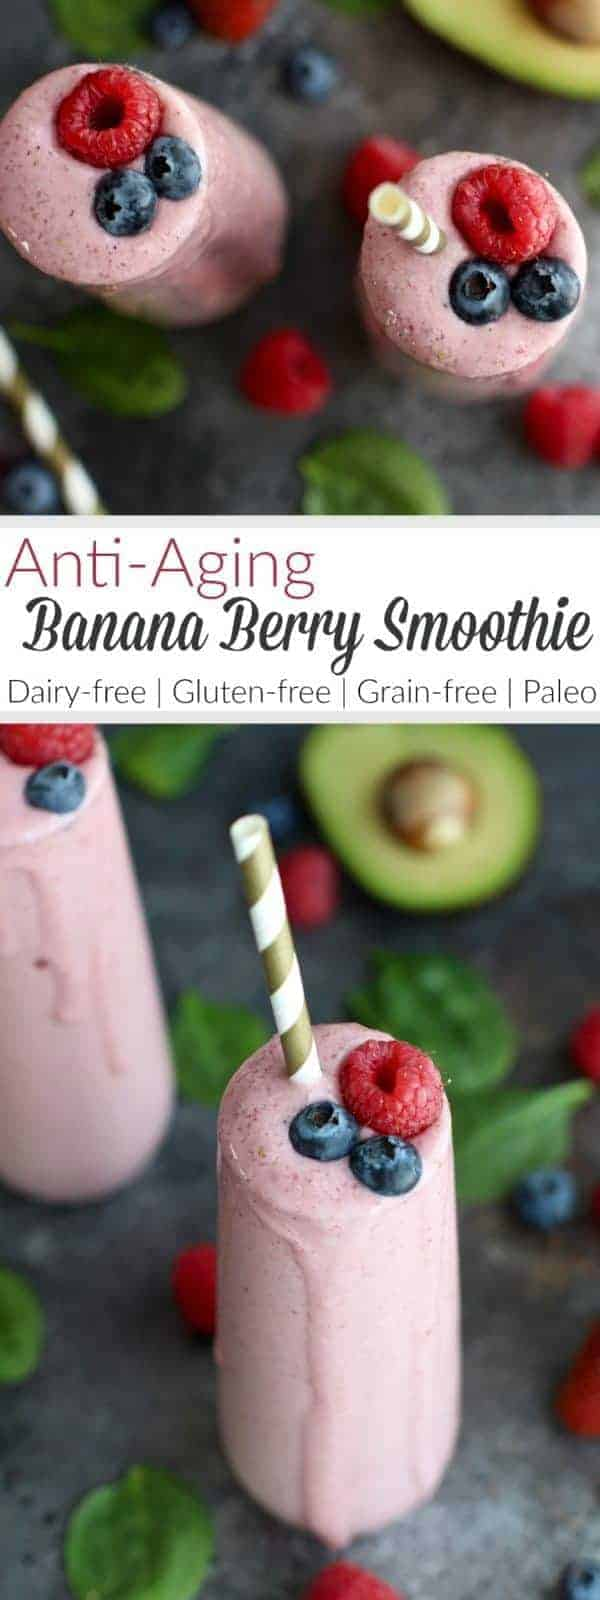 Sip your way to healthier joints, skin, hair and nails with this Anti-Aging Banana Berry Smoothie. Made with Primal Kitchen's Collagen Fuel. | Dairy-free, Gluten-free, Grain-free, Paleo | therealfoodrds.com